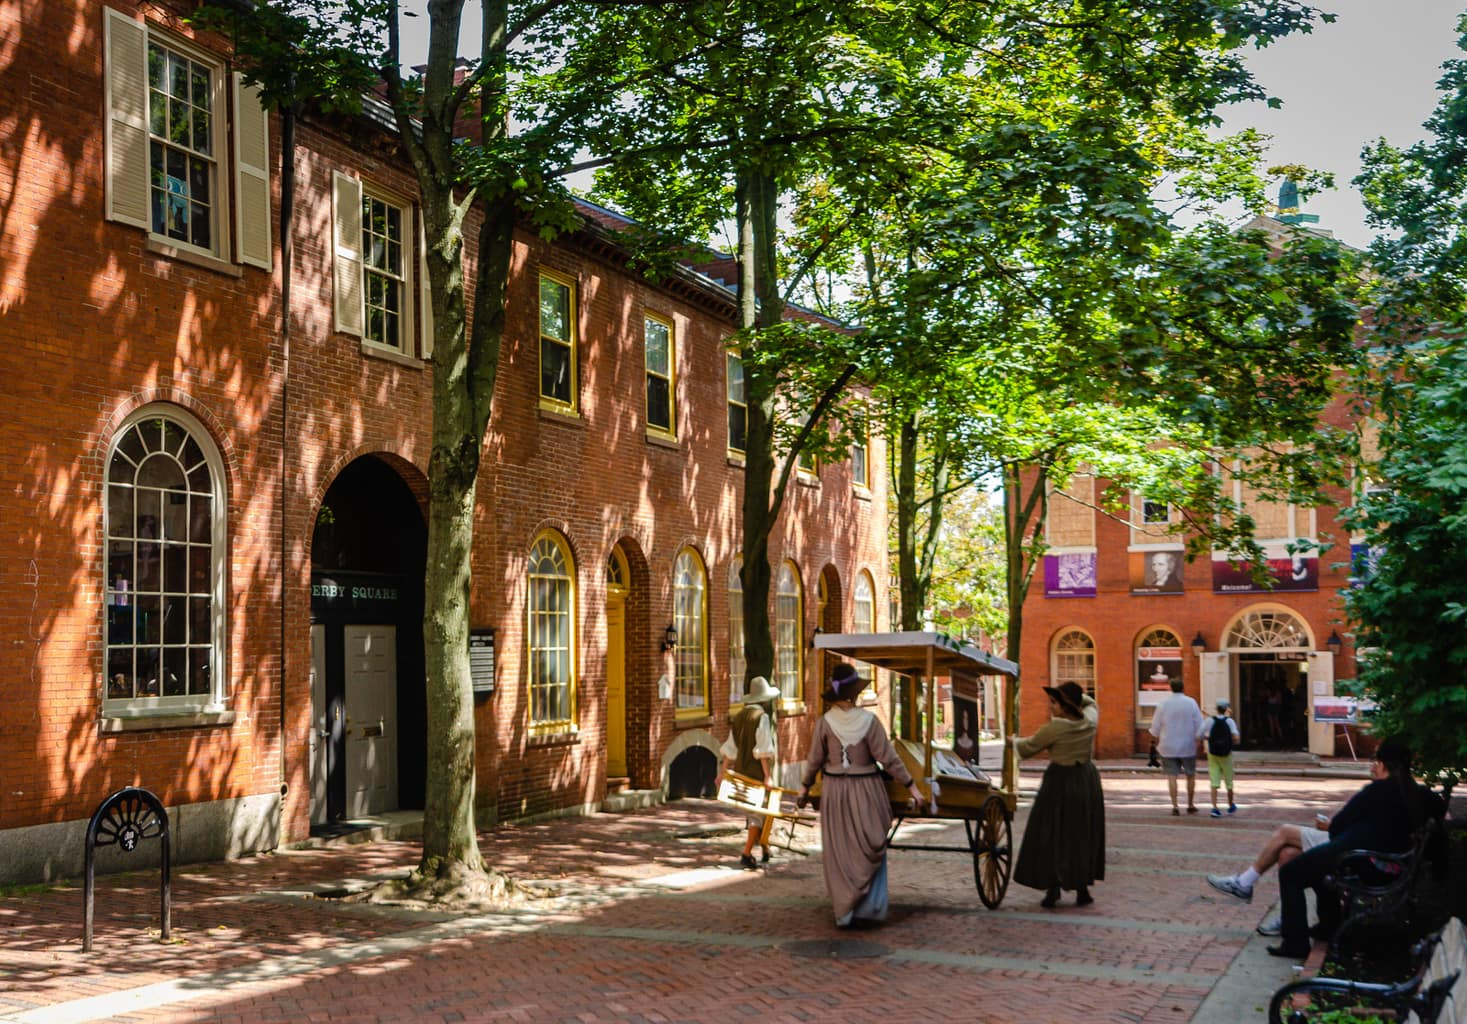 One of the best historic hotels can be found in Salem MA